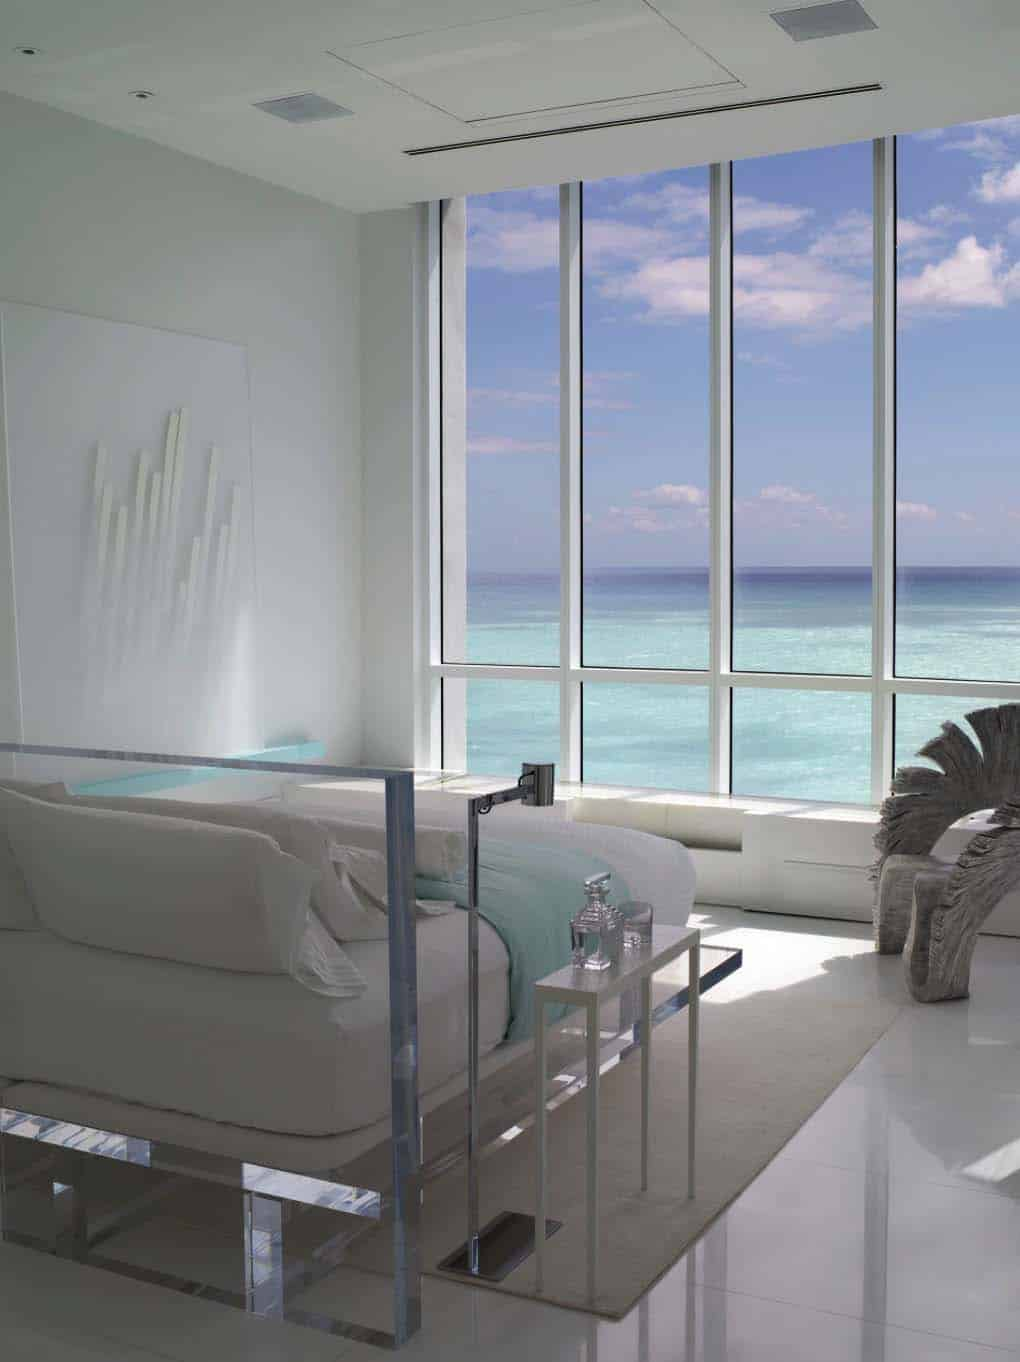 Bedroom With Ocean Views-05-1 Kindesign